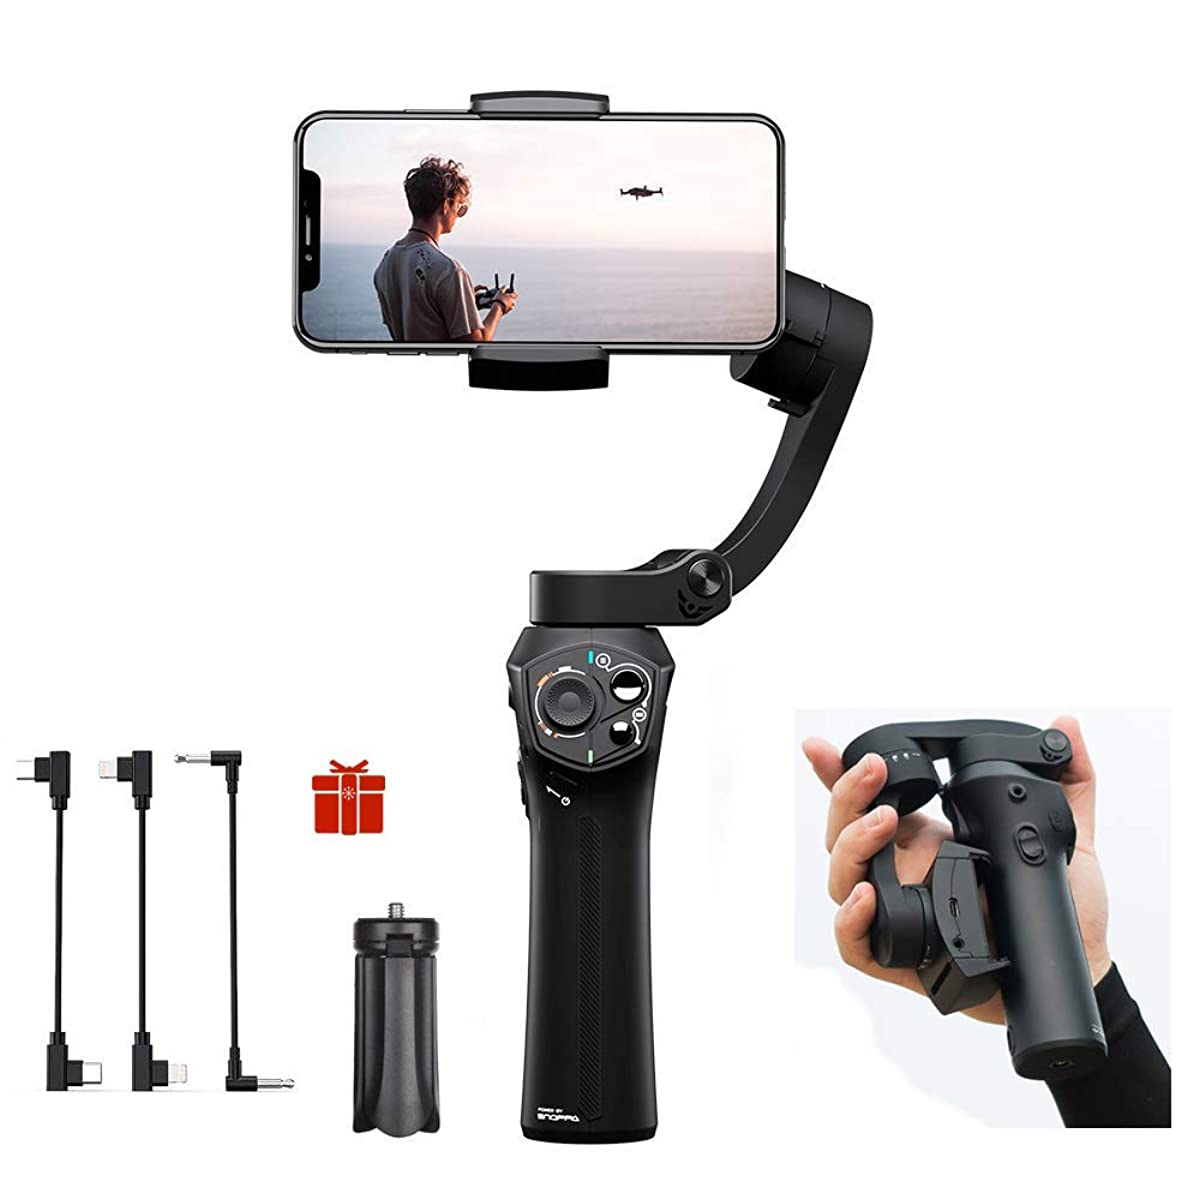 Snoppa Atom Foldable Pocket-Sized 3-Axis Handheld Gimbal Stabilizer Compatible for GoPro Hero 4 5 6 iPhone Smartphone & Wireless Charging & 24 H Running time,310g Payload